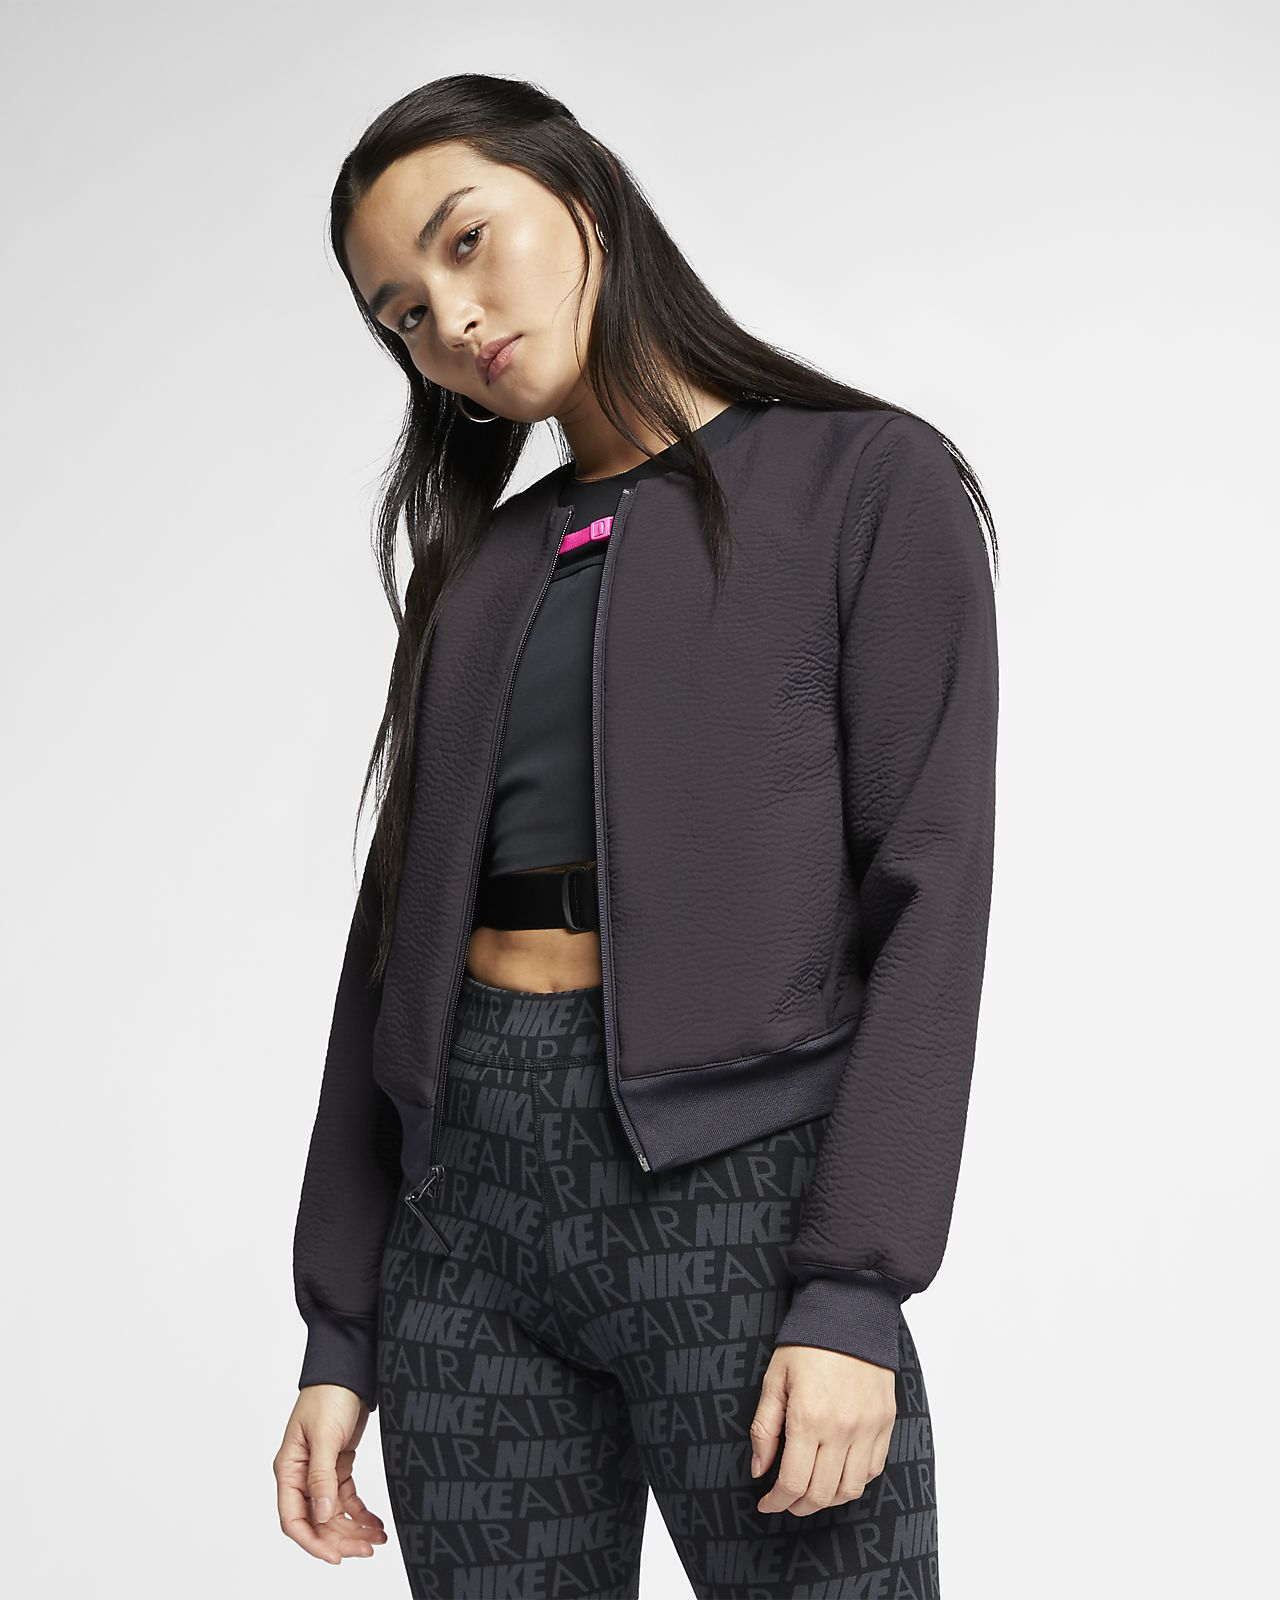 Nike Sportswear Tech Pack Women's Full Zip Jacket